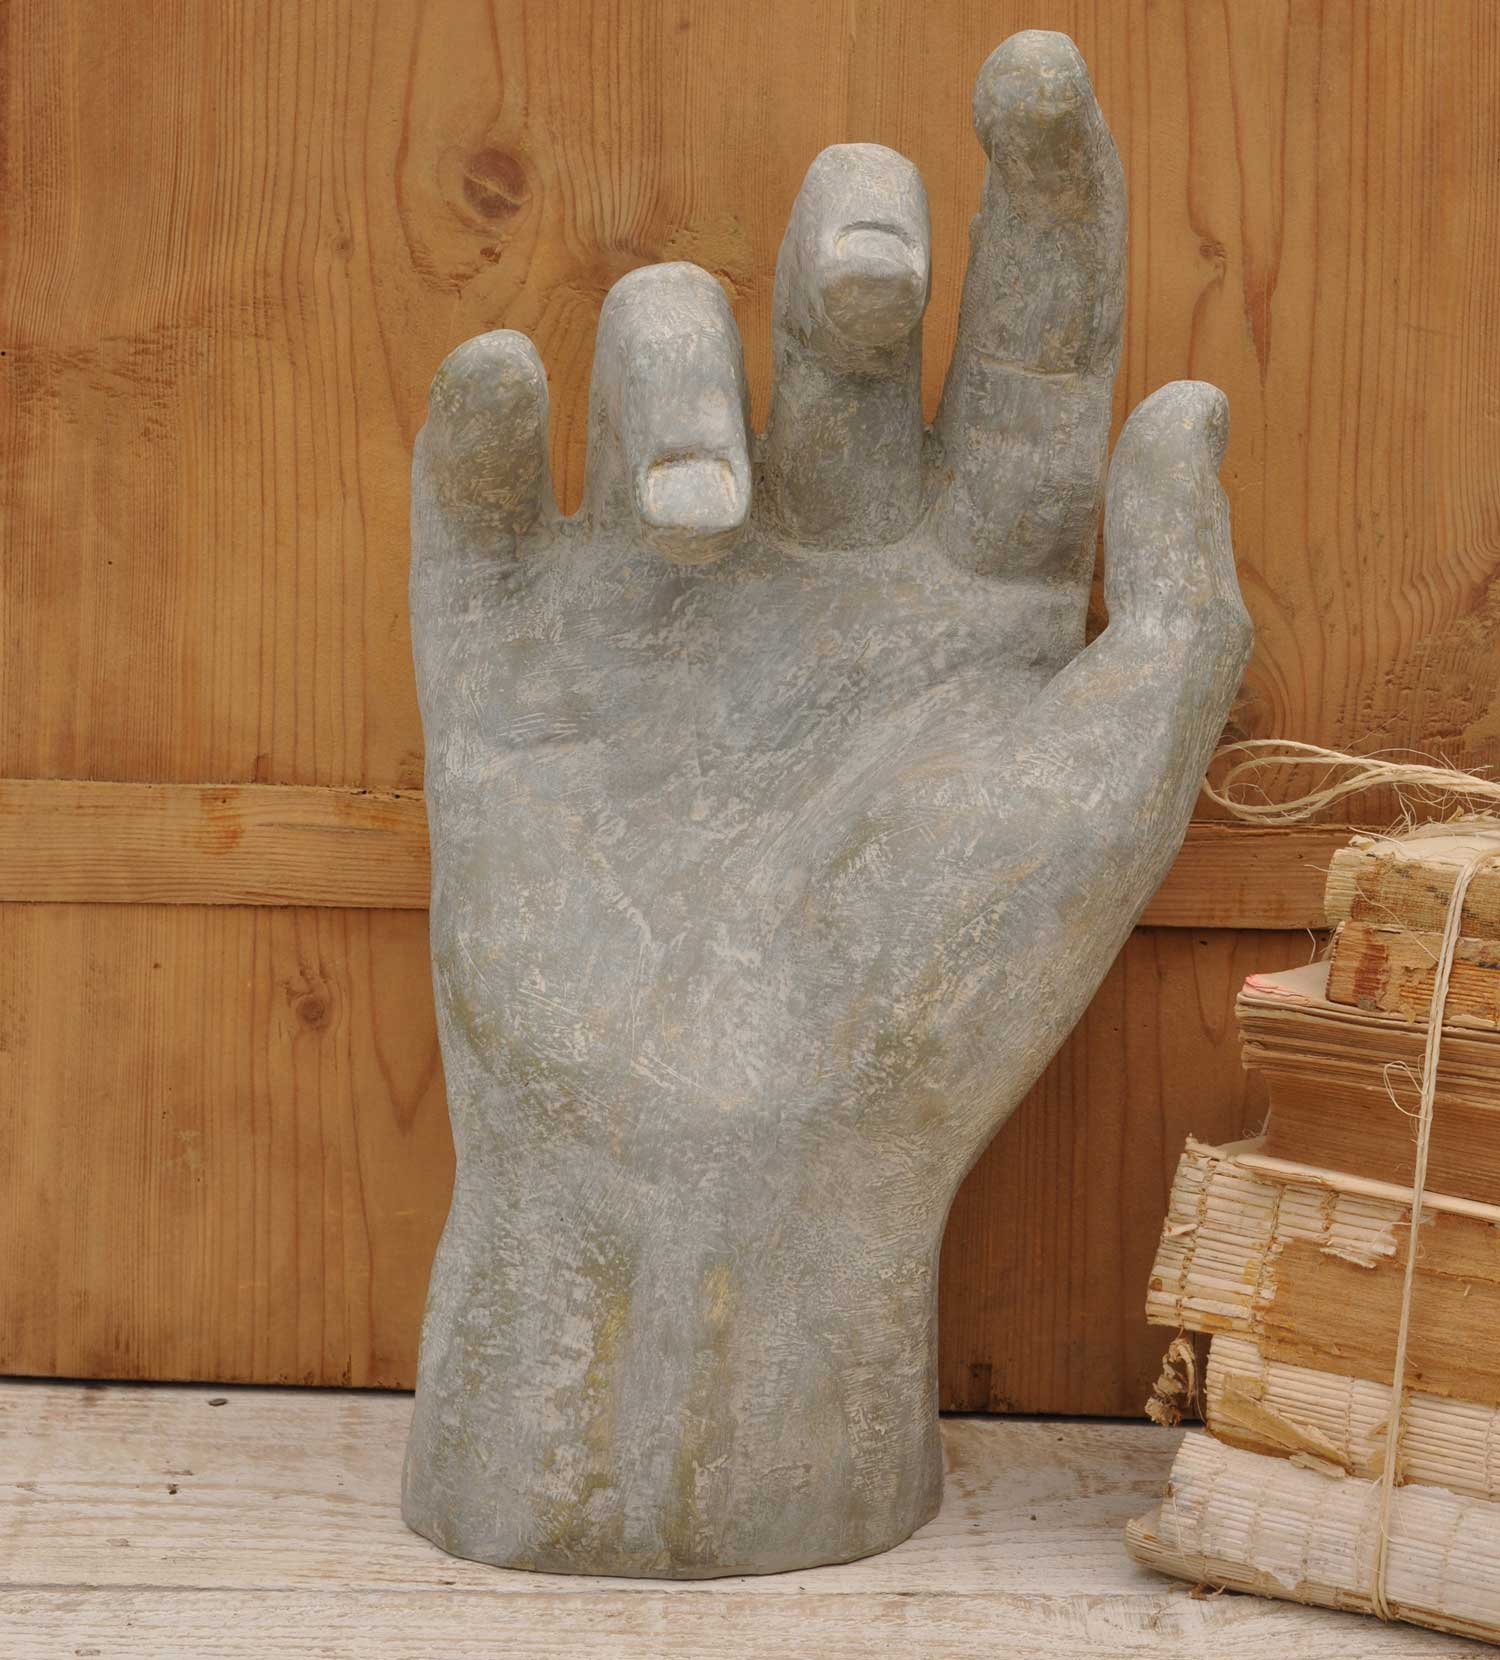 Large Hand Human Form Sculpture